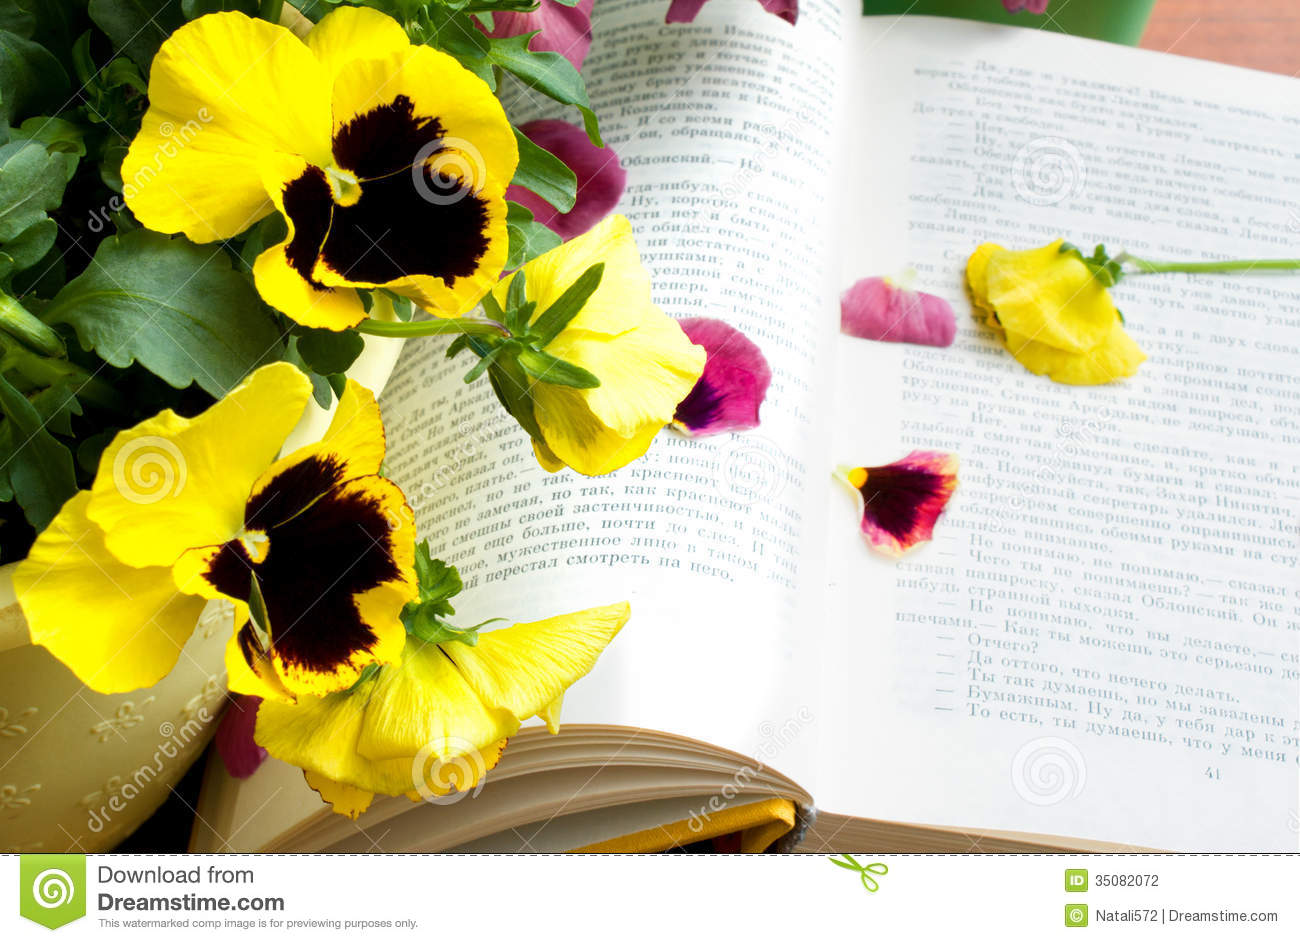 Flowers and petals on book stock photo. Image of depth ...